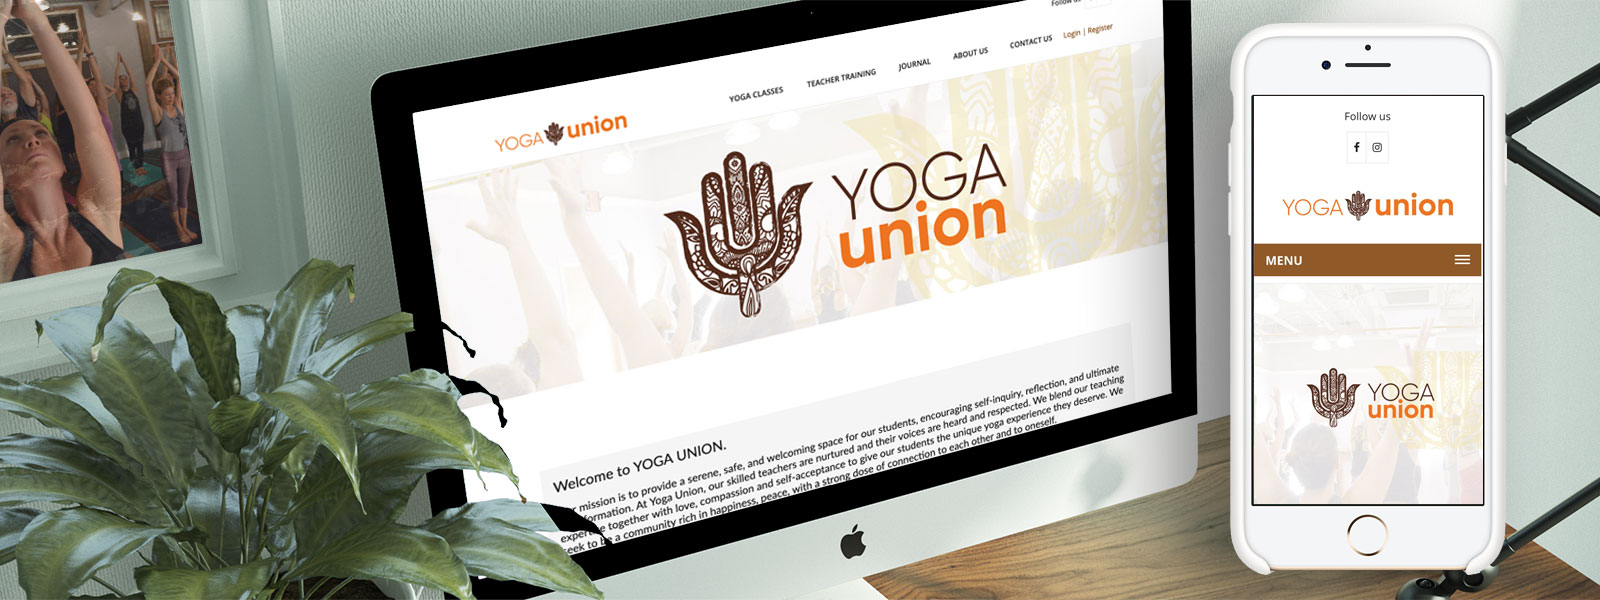 Yoga Union website